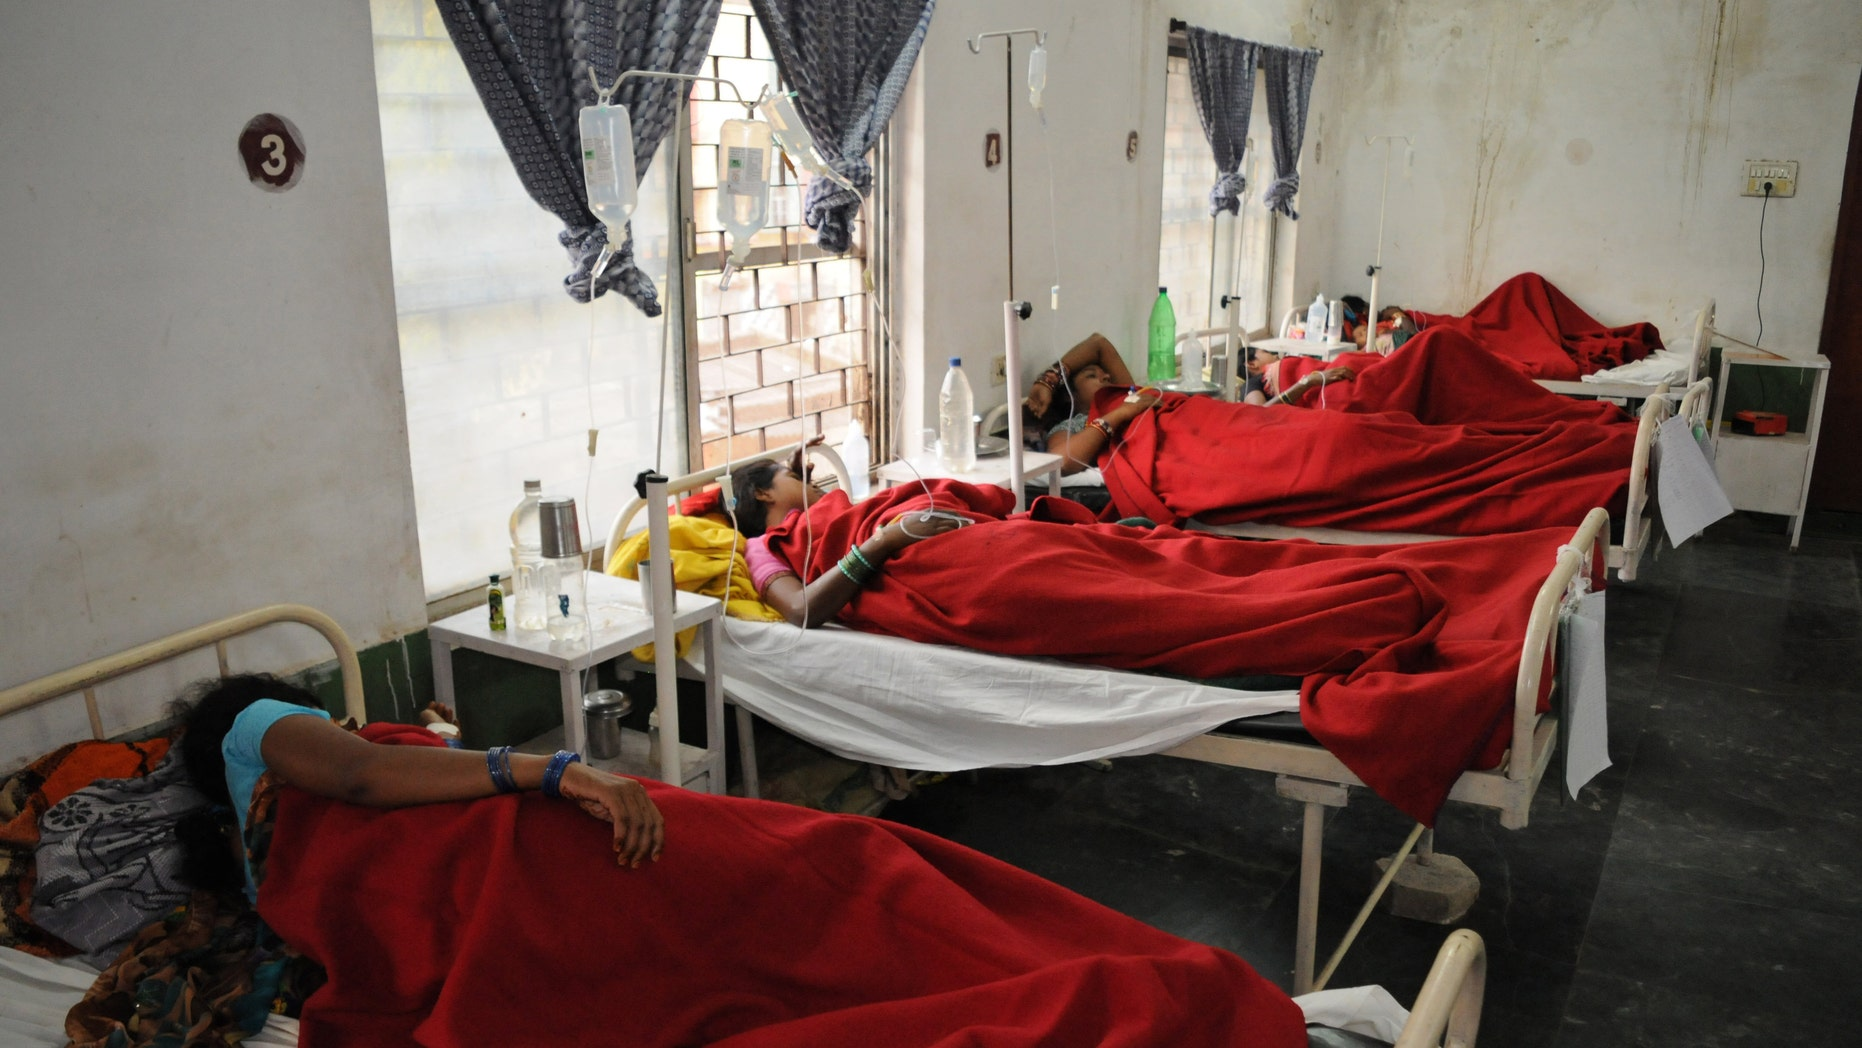 Nov. 12, 2014: Indian women who underwent sterilization surgeries receive treatment at the District Hospital in Bilaspur, in the central Indian state of Chhattisgarh after at least a dozen died and many others fell ill following similar surgery.